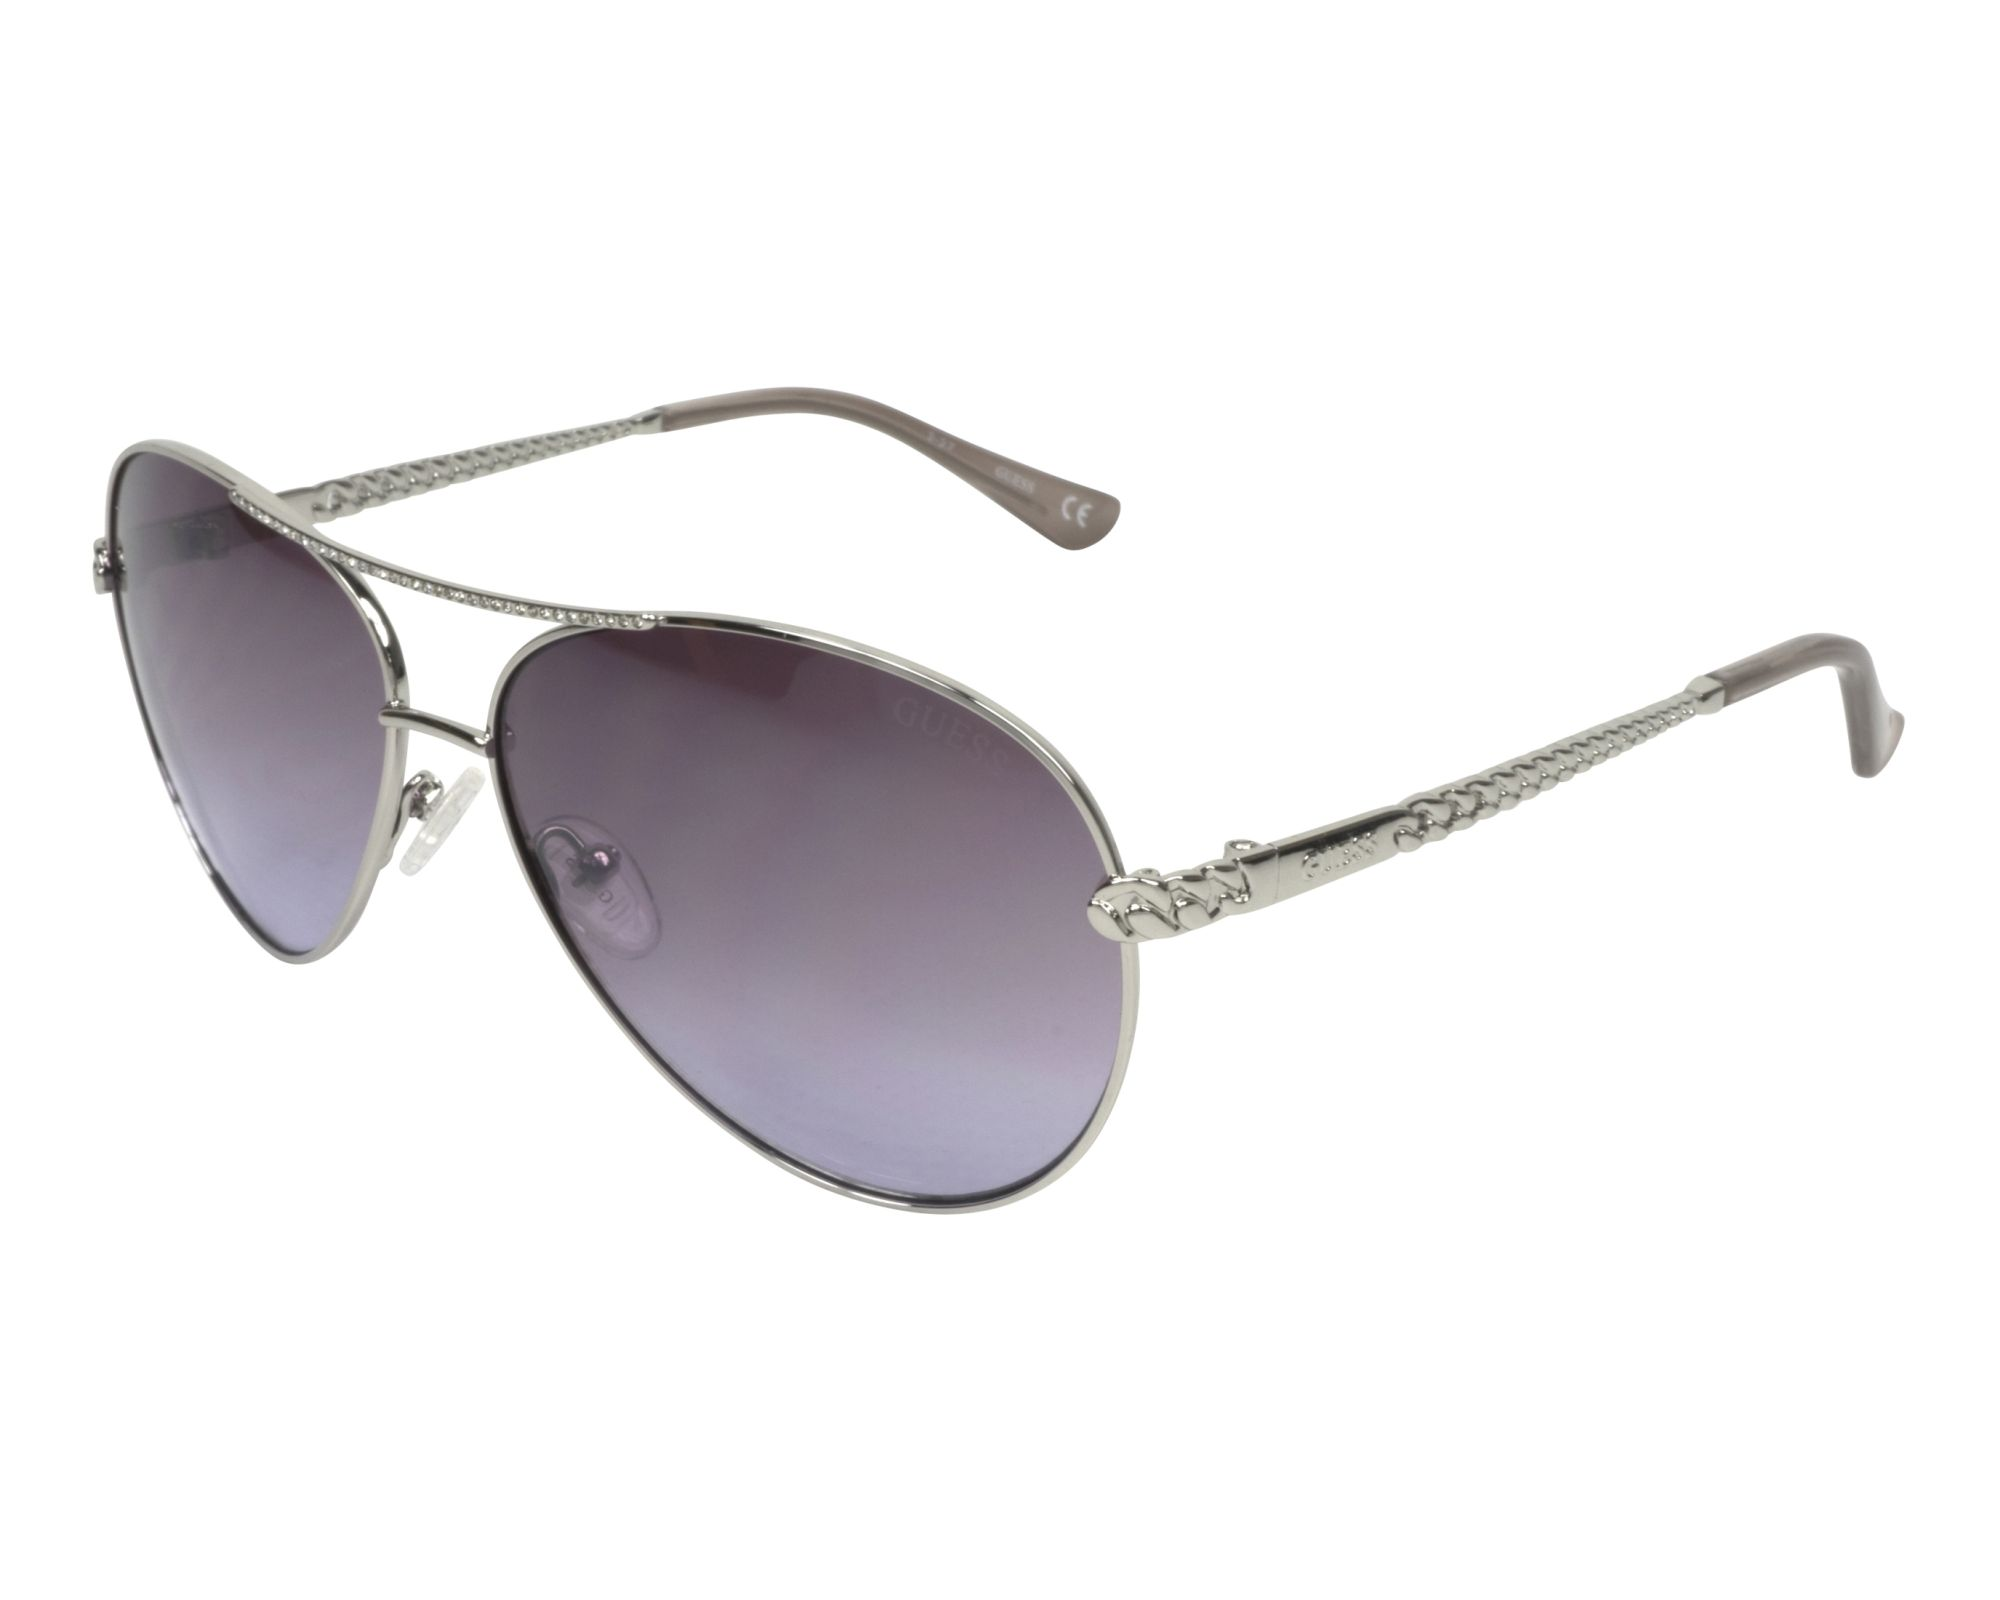 Sunglasses Guess GU-7470-S 10Z 60-13 Silver profile view f99af475e85c